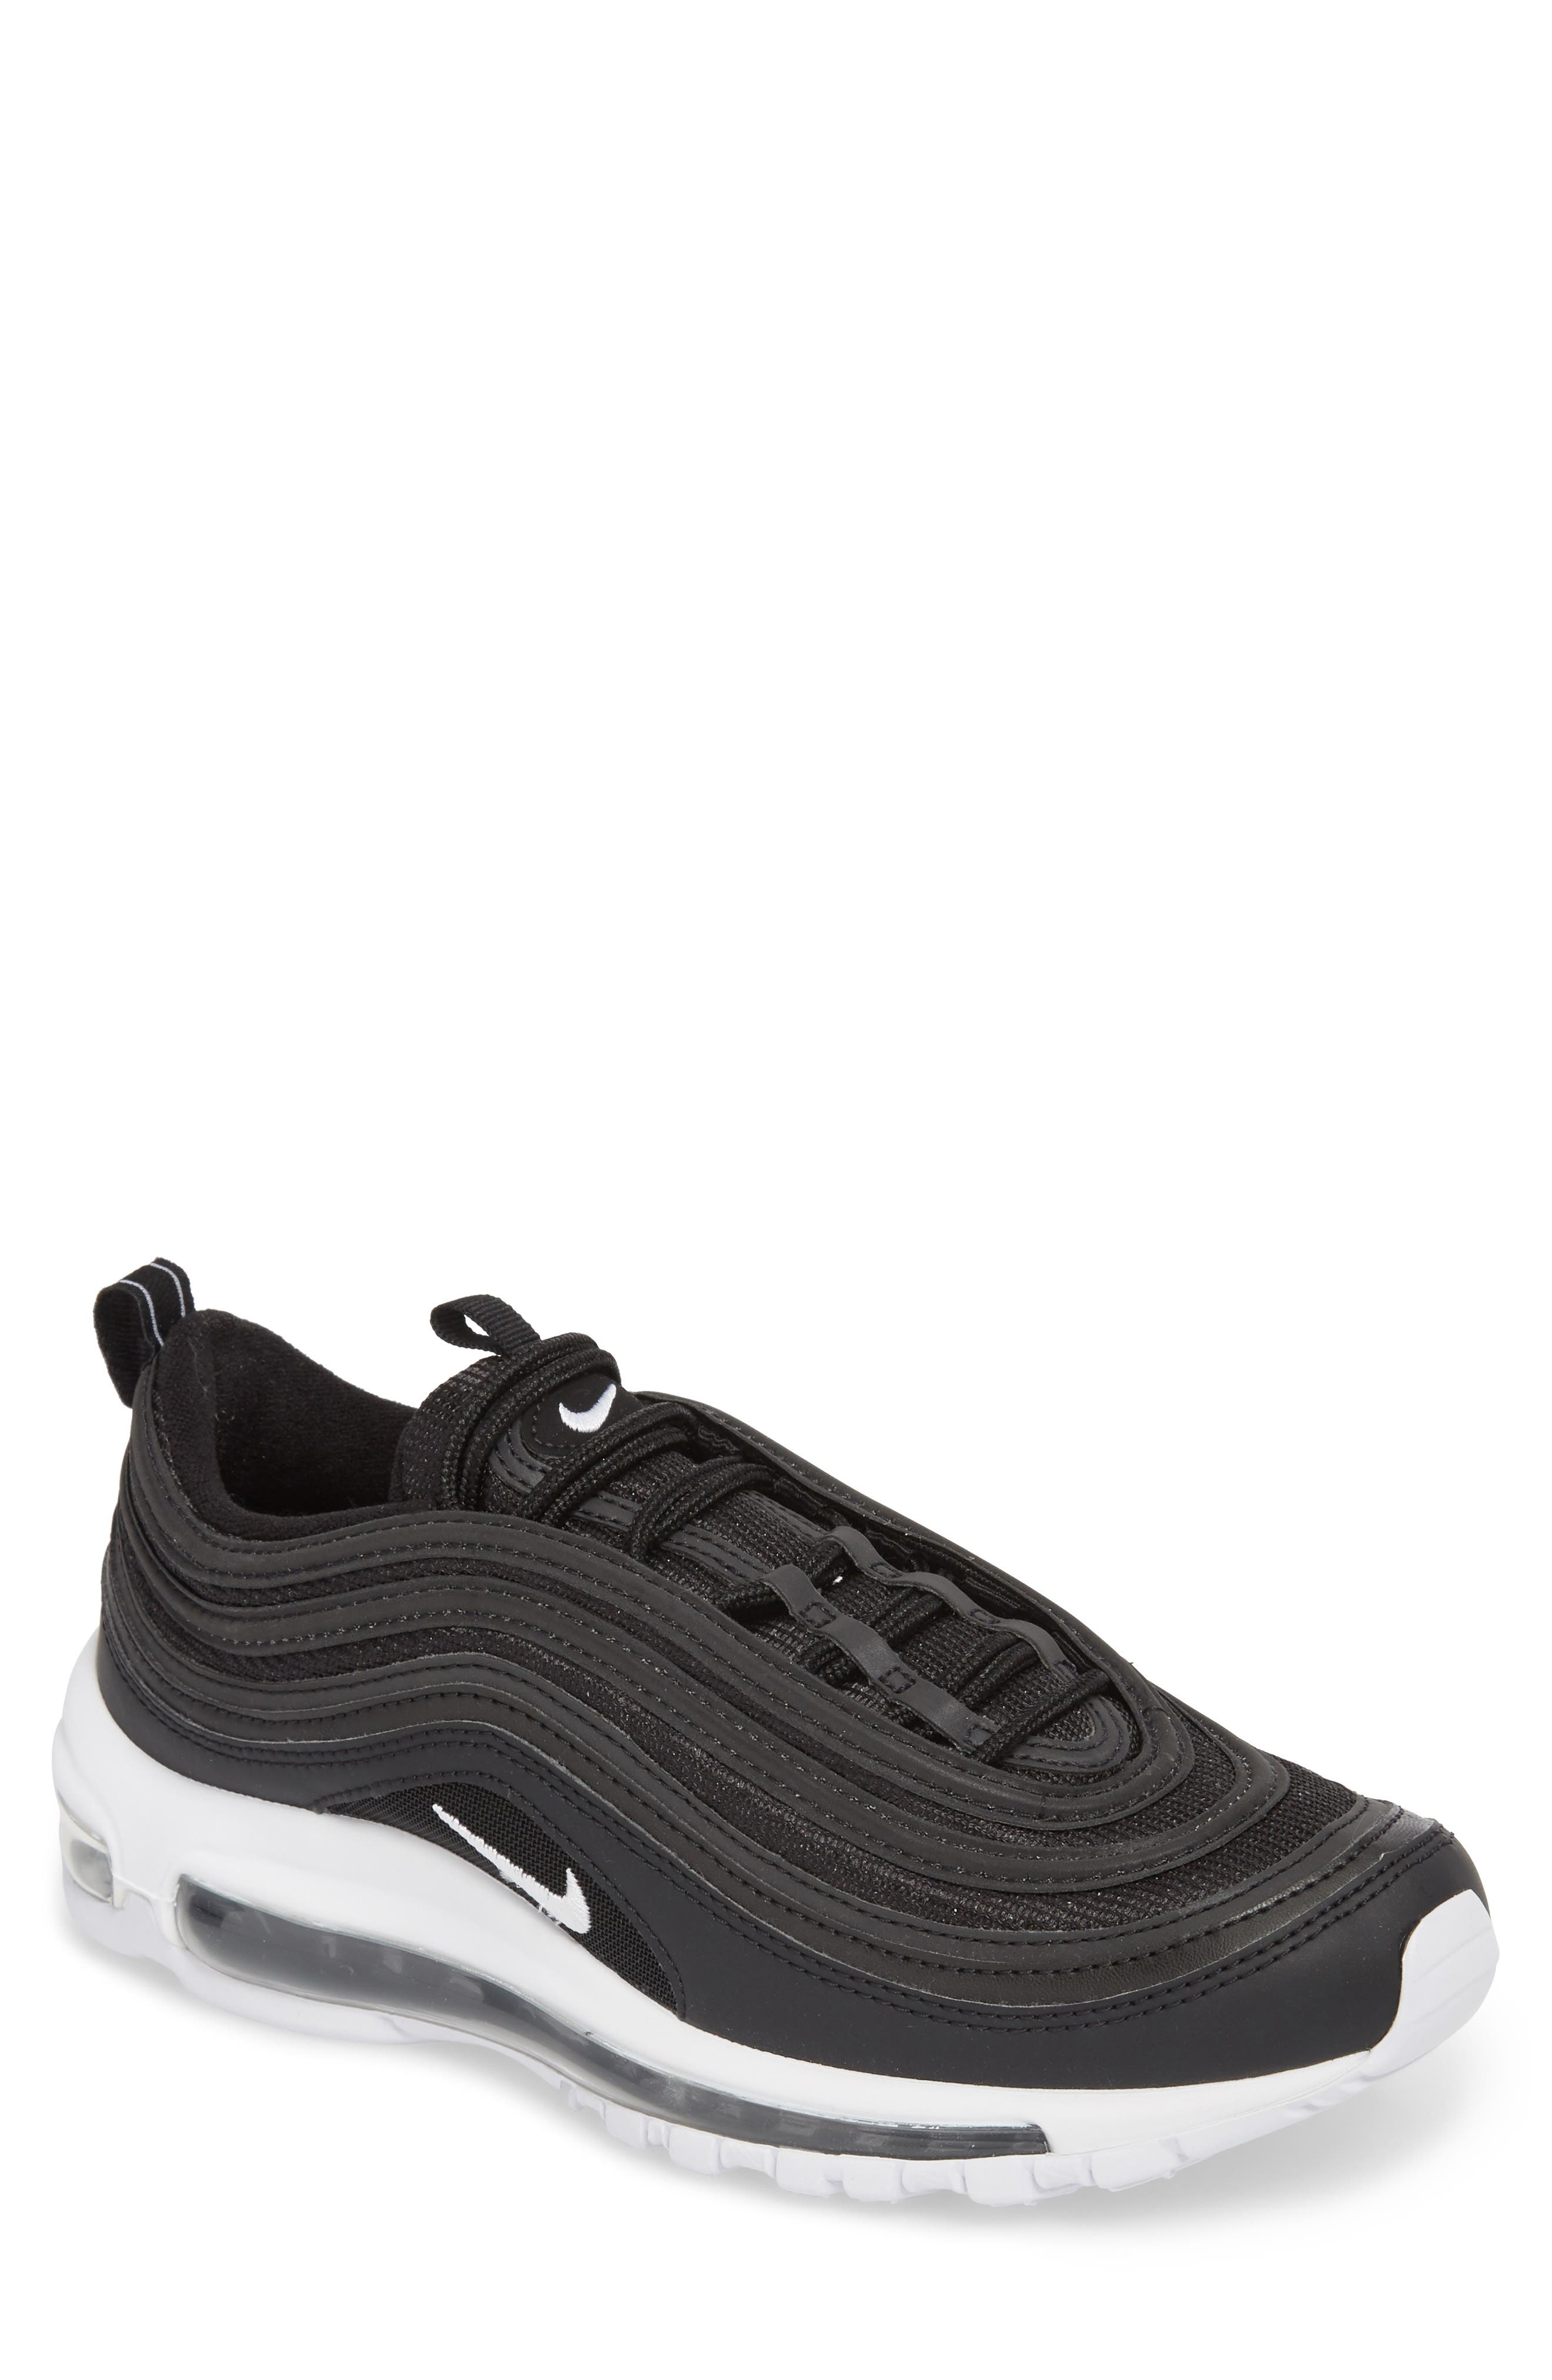 Air Max 97 Sneaker by Nike